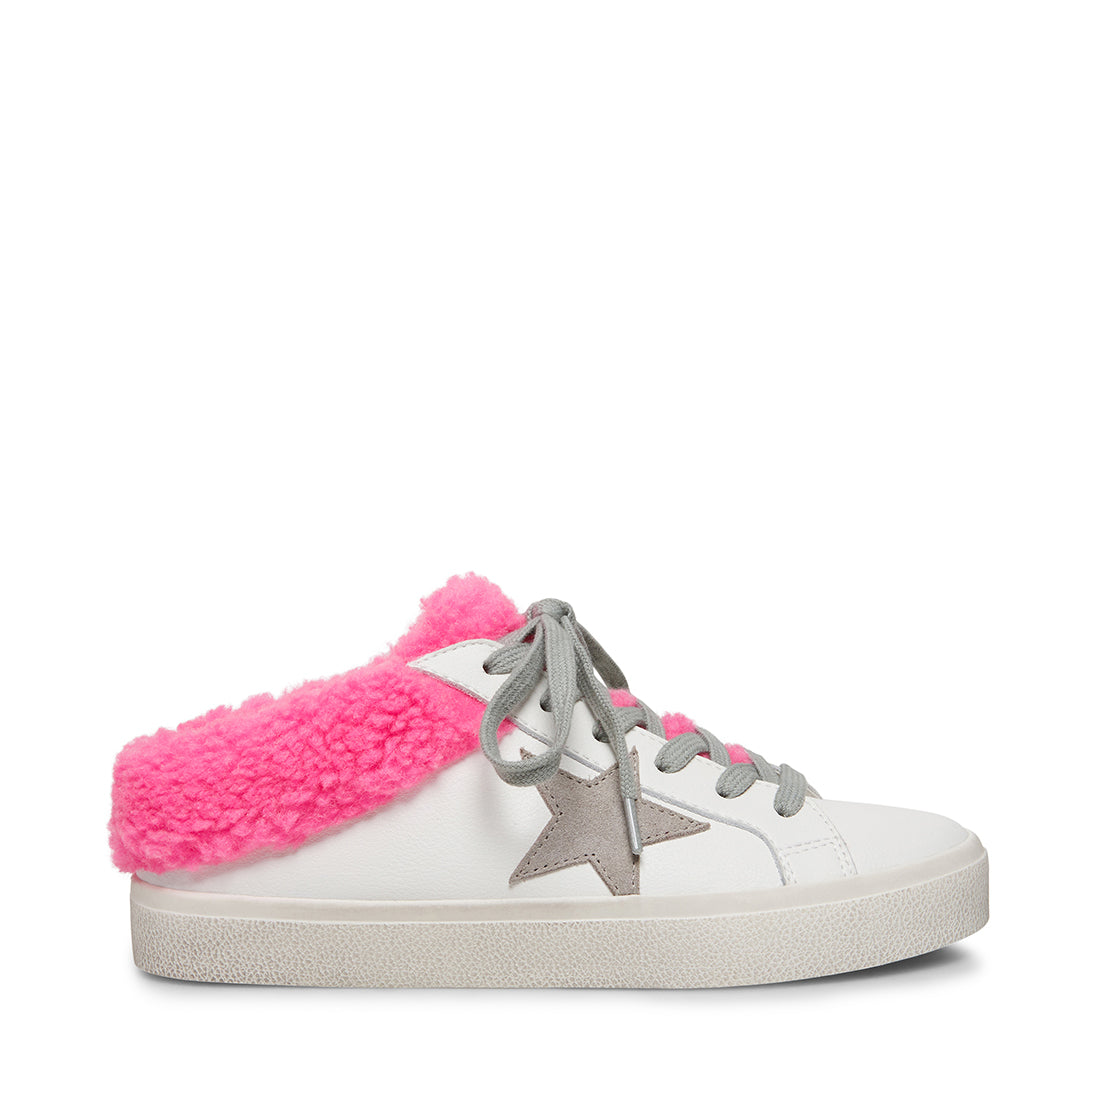 PETERS WHITE/PINK – Steve Madden